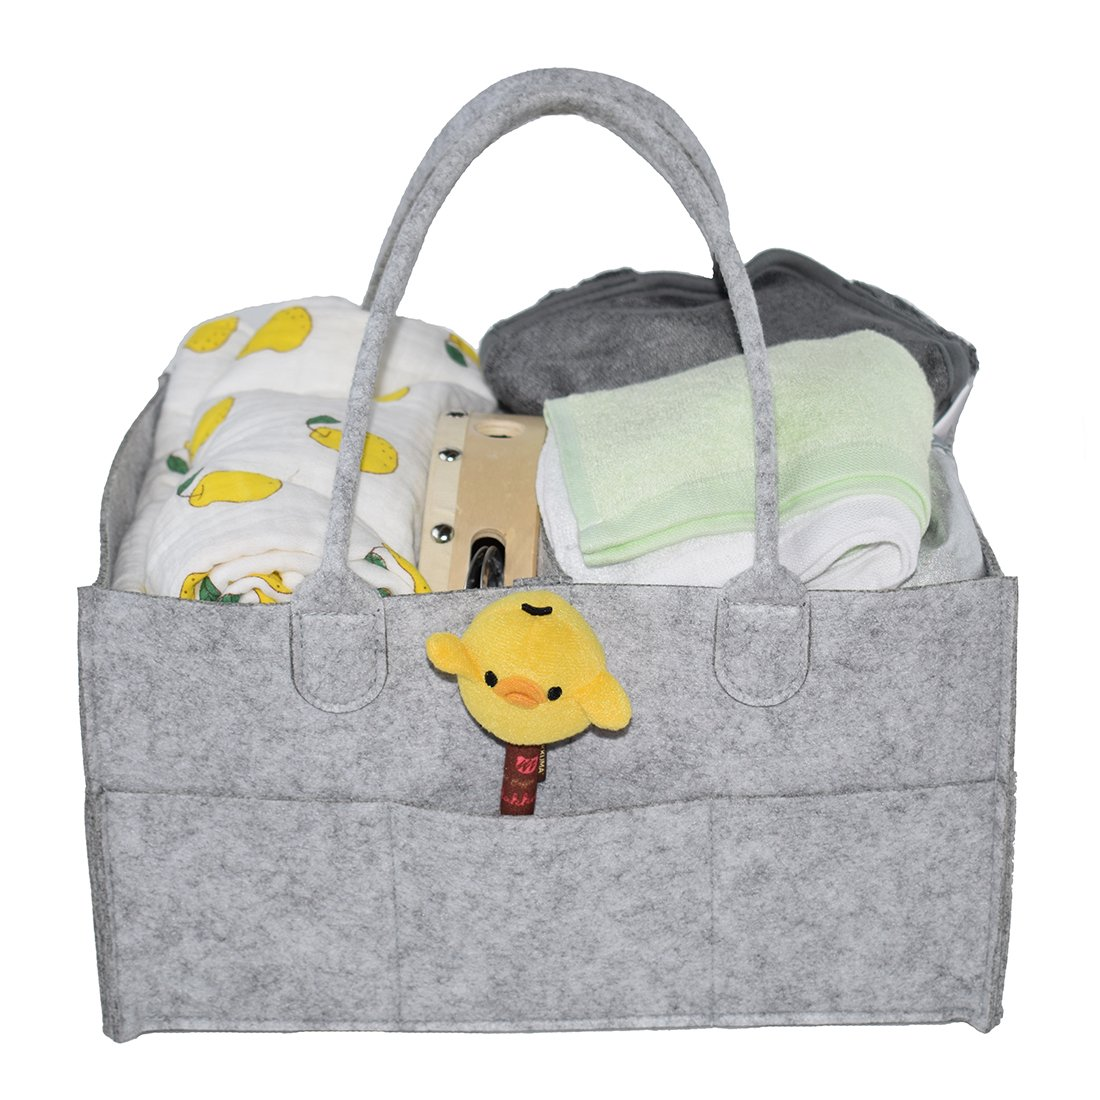 Tosnail Portable Baby Diaper Storage Caddy Organizer Removable Compartments - Gray